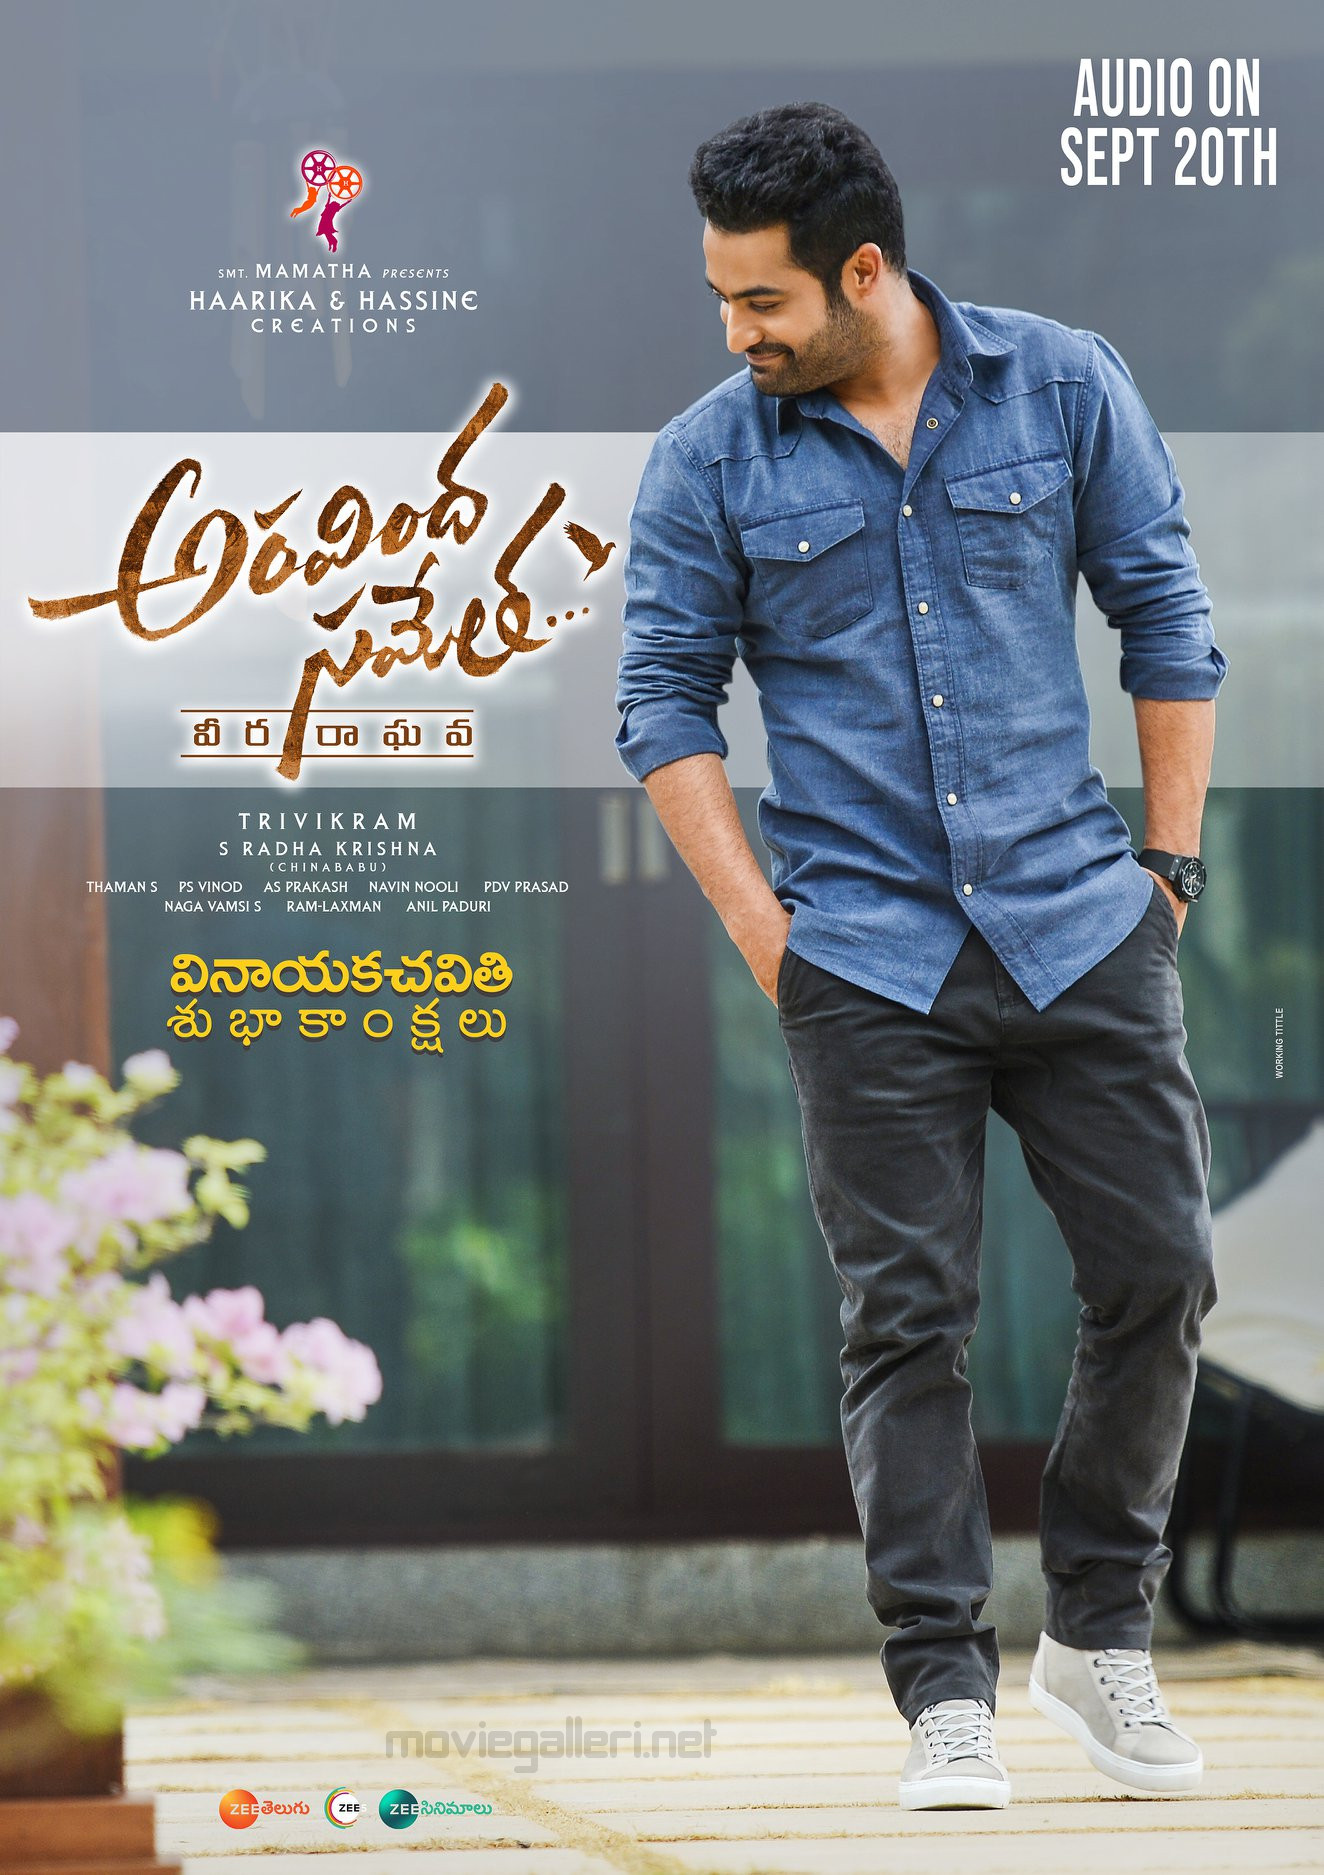 Jr NTR Aravinda Sametha Audio Release Date Sep 20th Poster HD